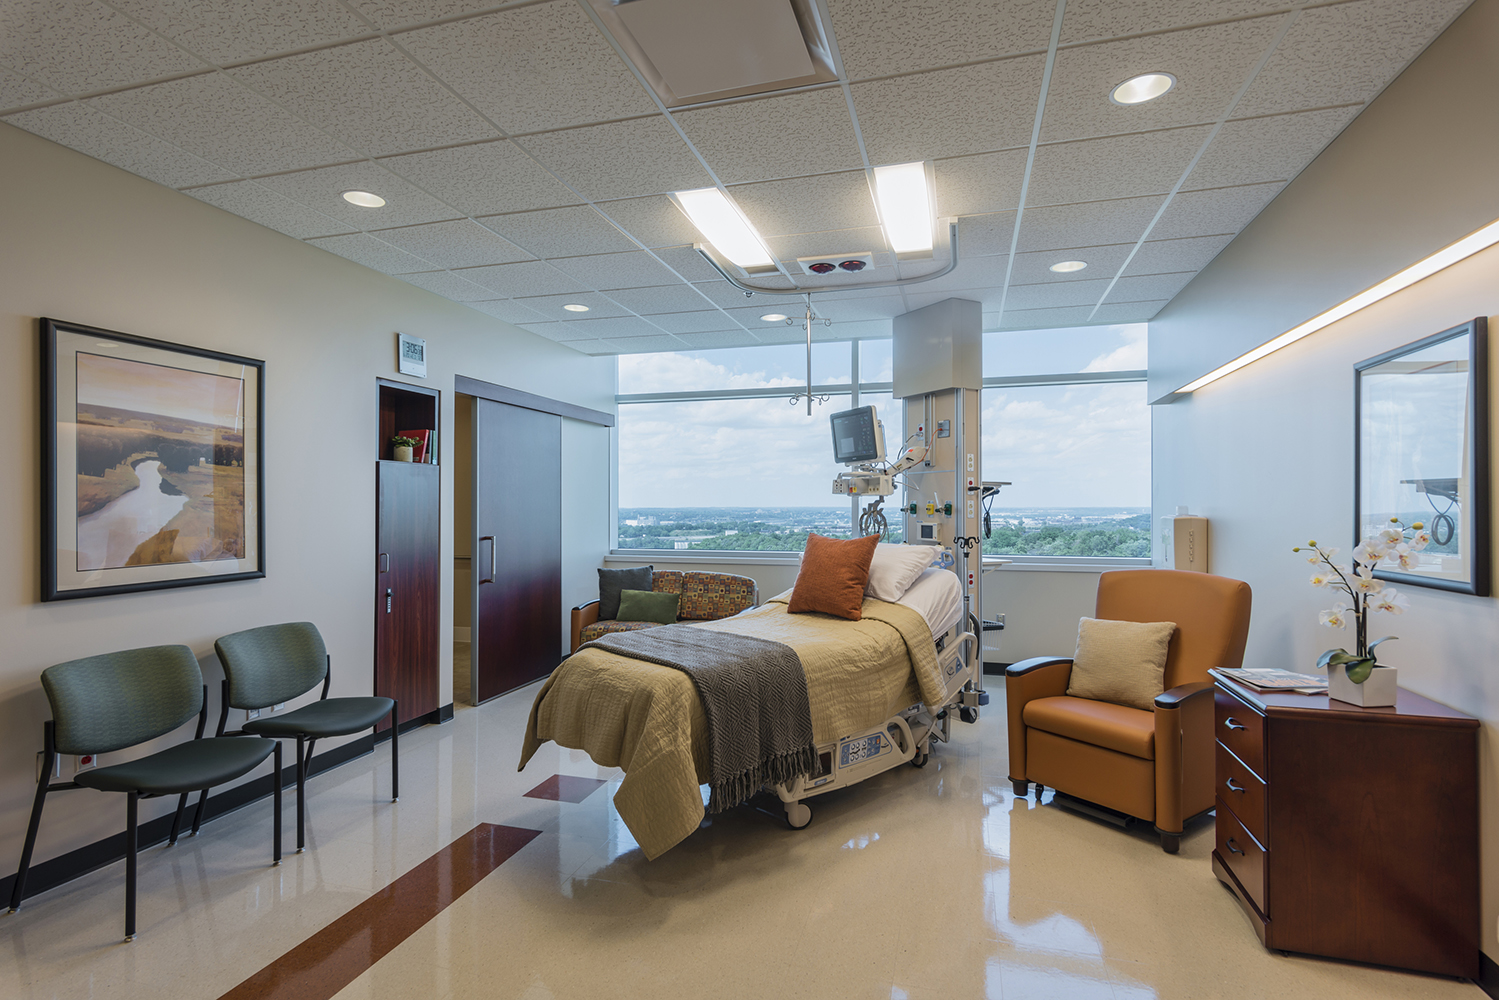 Unity patient room lighting over a patient bed in front of a wide window.